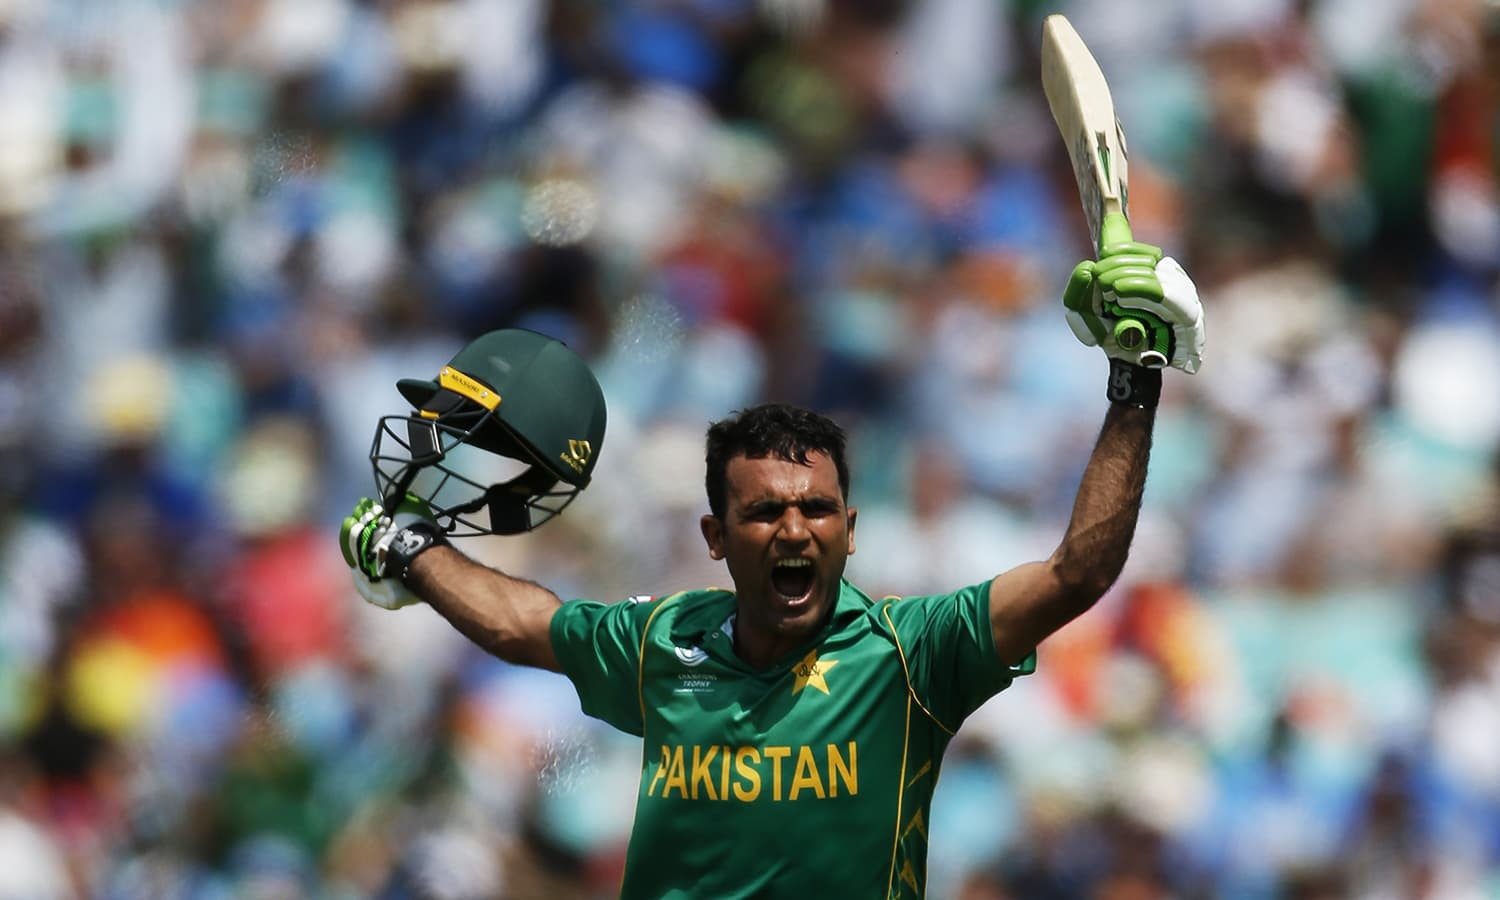 Fakhar Zaman celebrates his century, going on to score 114 runs before being caught out on a Hardik Pandya ball.─Reuters